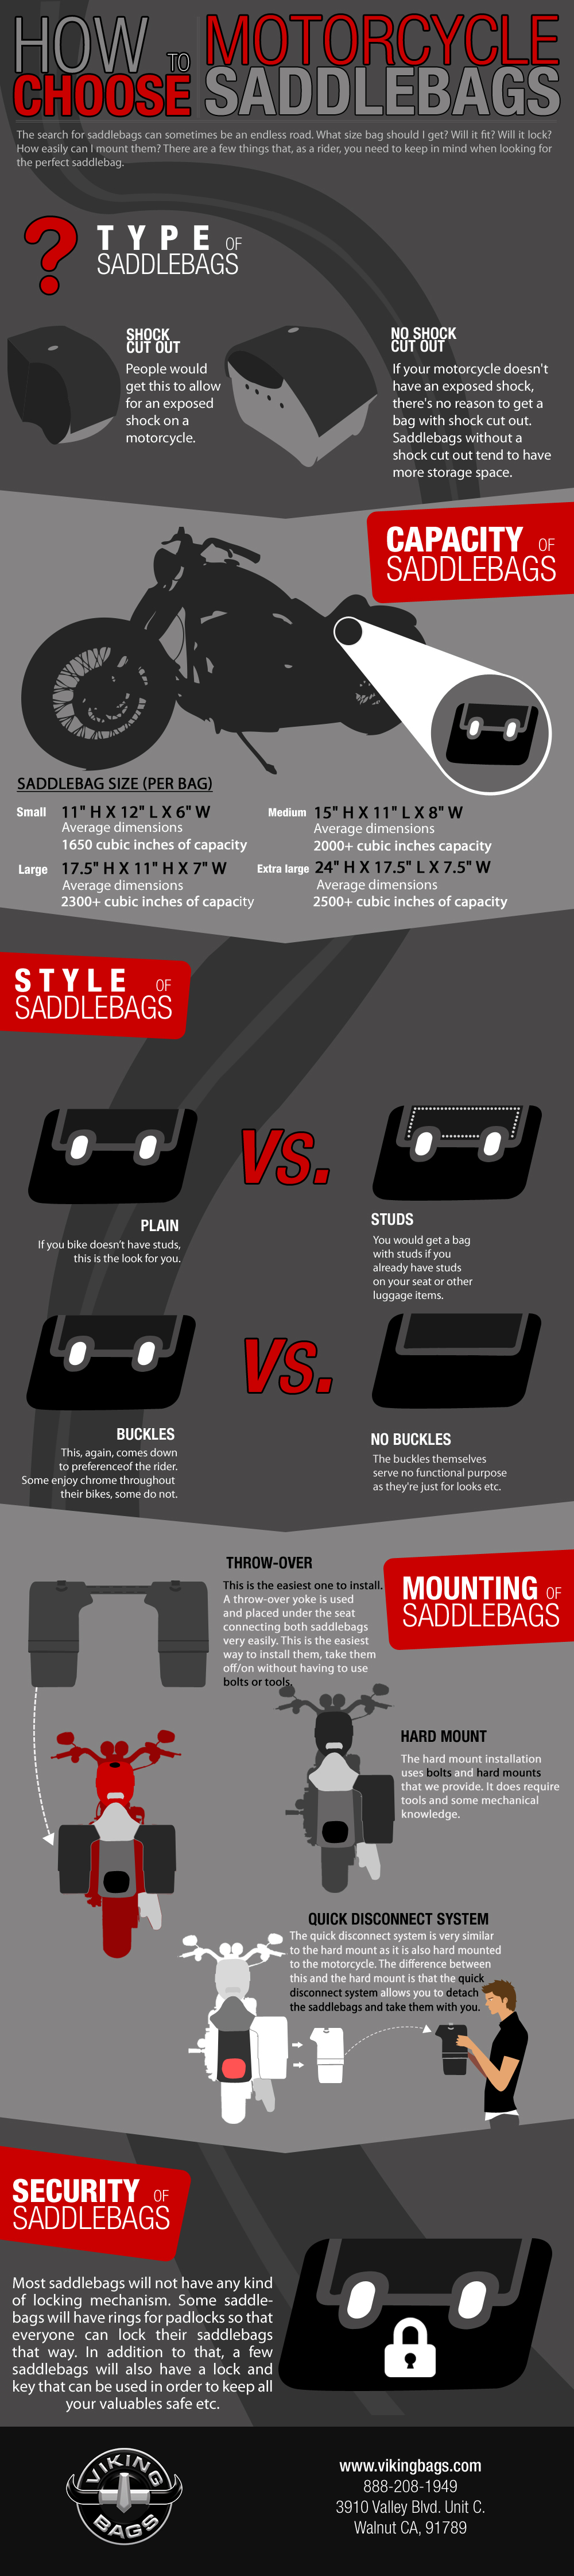 How To Choose Motorcycle Saddlebags Infographic